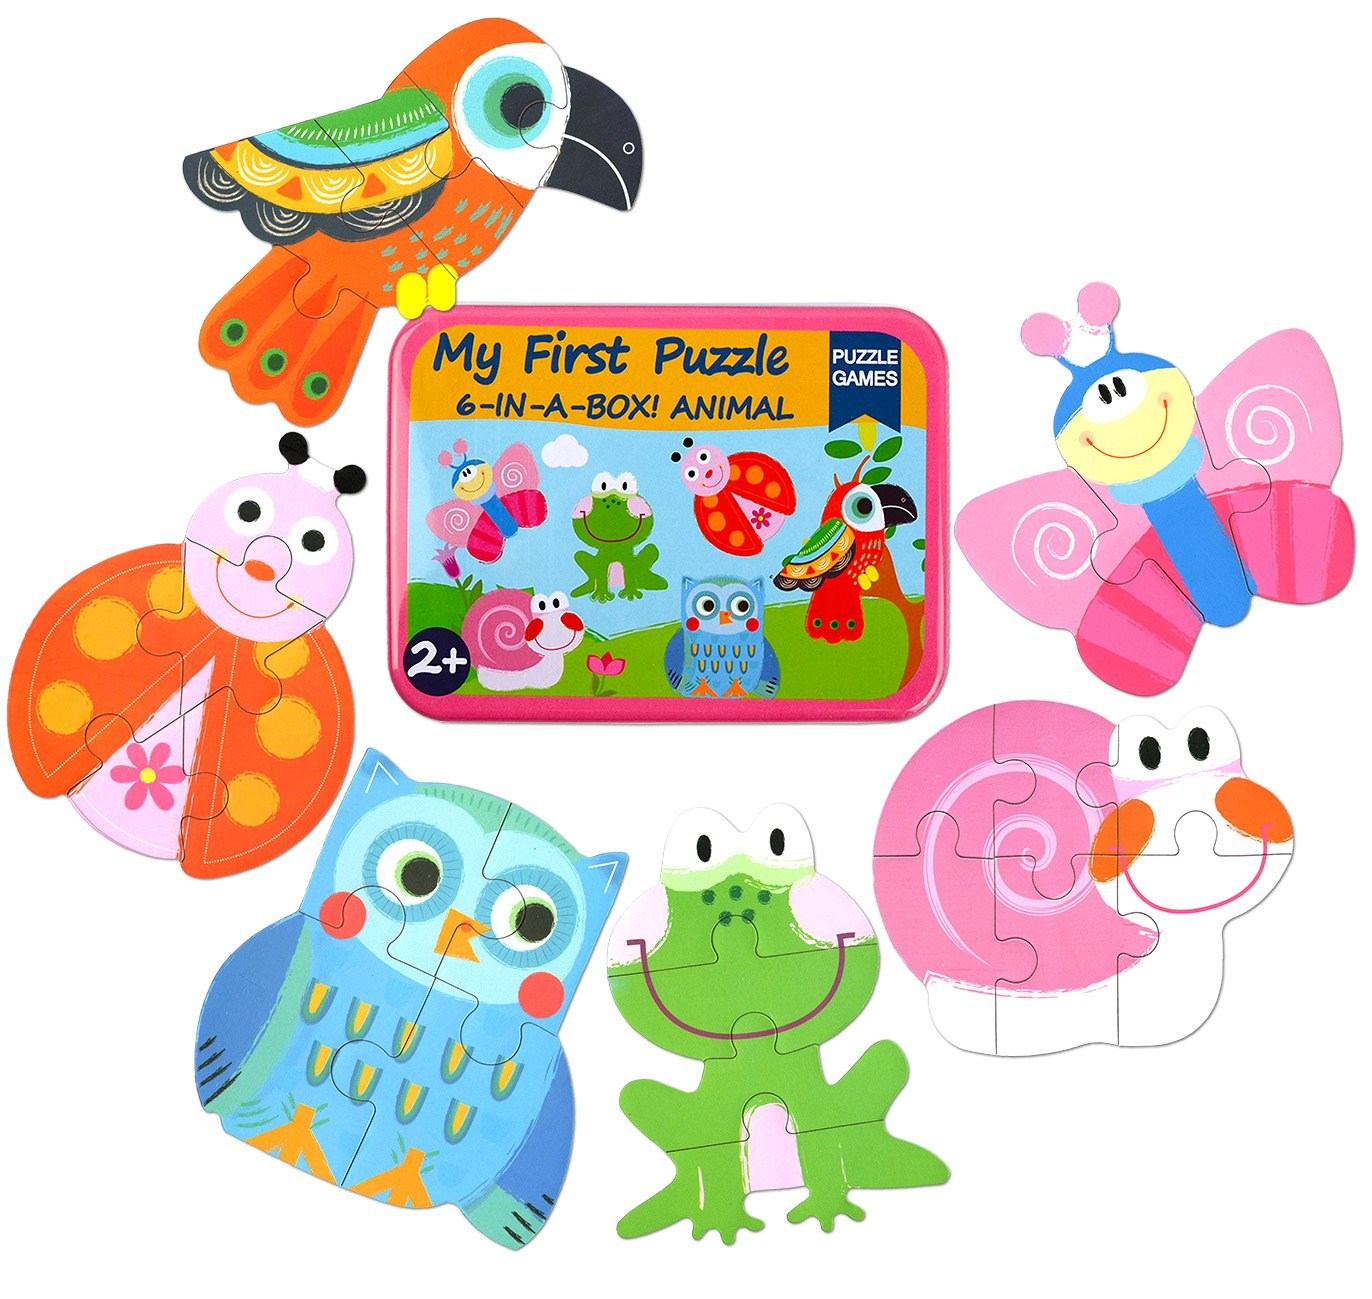 Vileafy Simple Floor Puzzles for Toddlers, 6-in-1 Beginners Jigsaw Puzzles